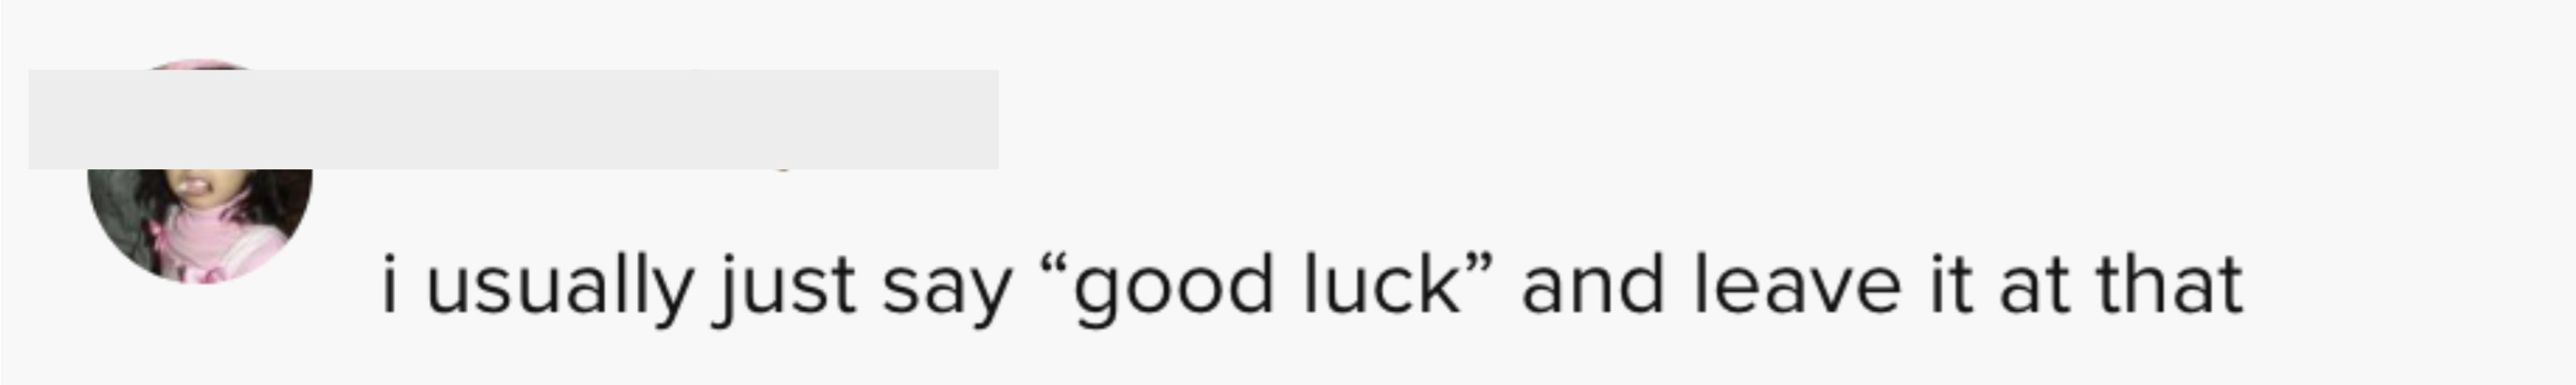 """i usually just say """"good luck"""" and leave it at that"""